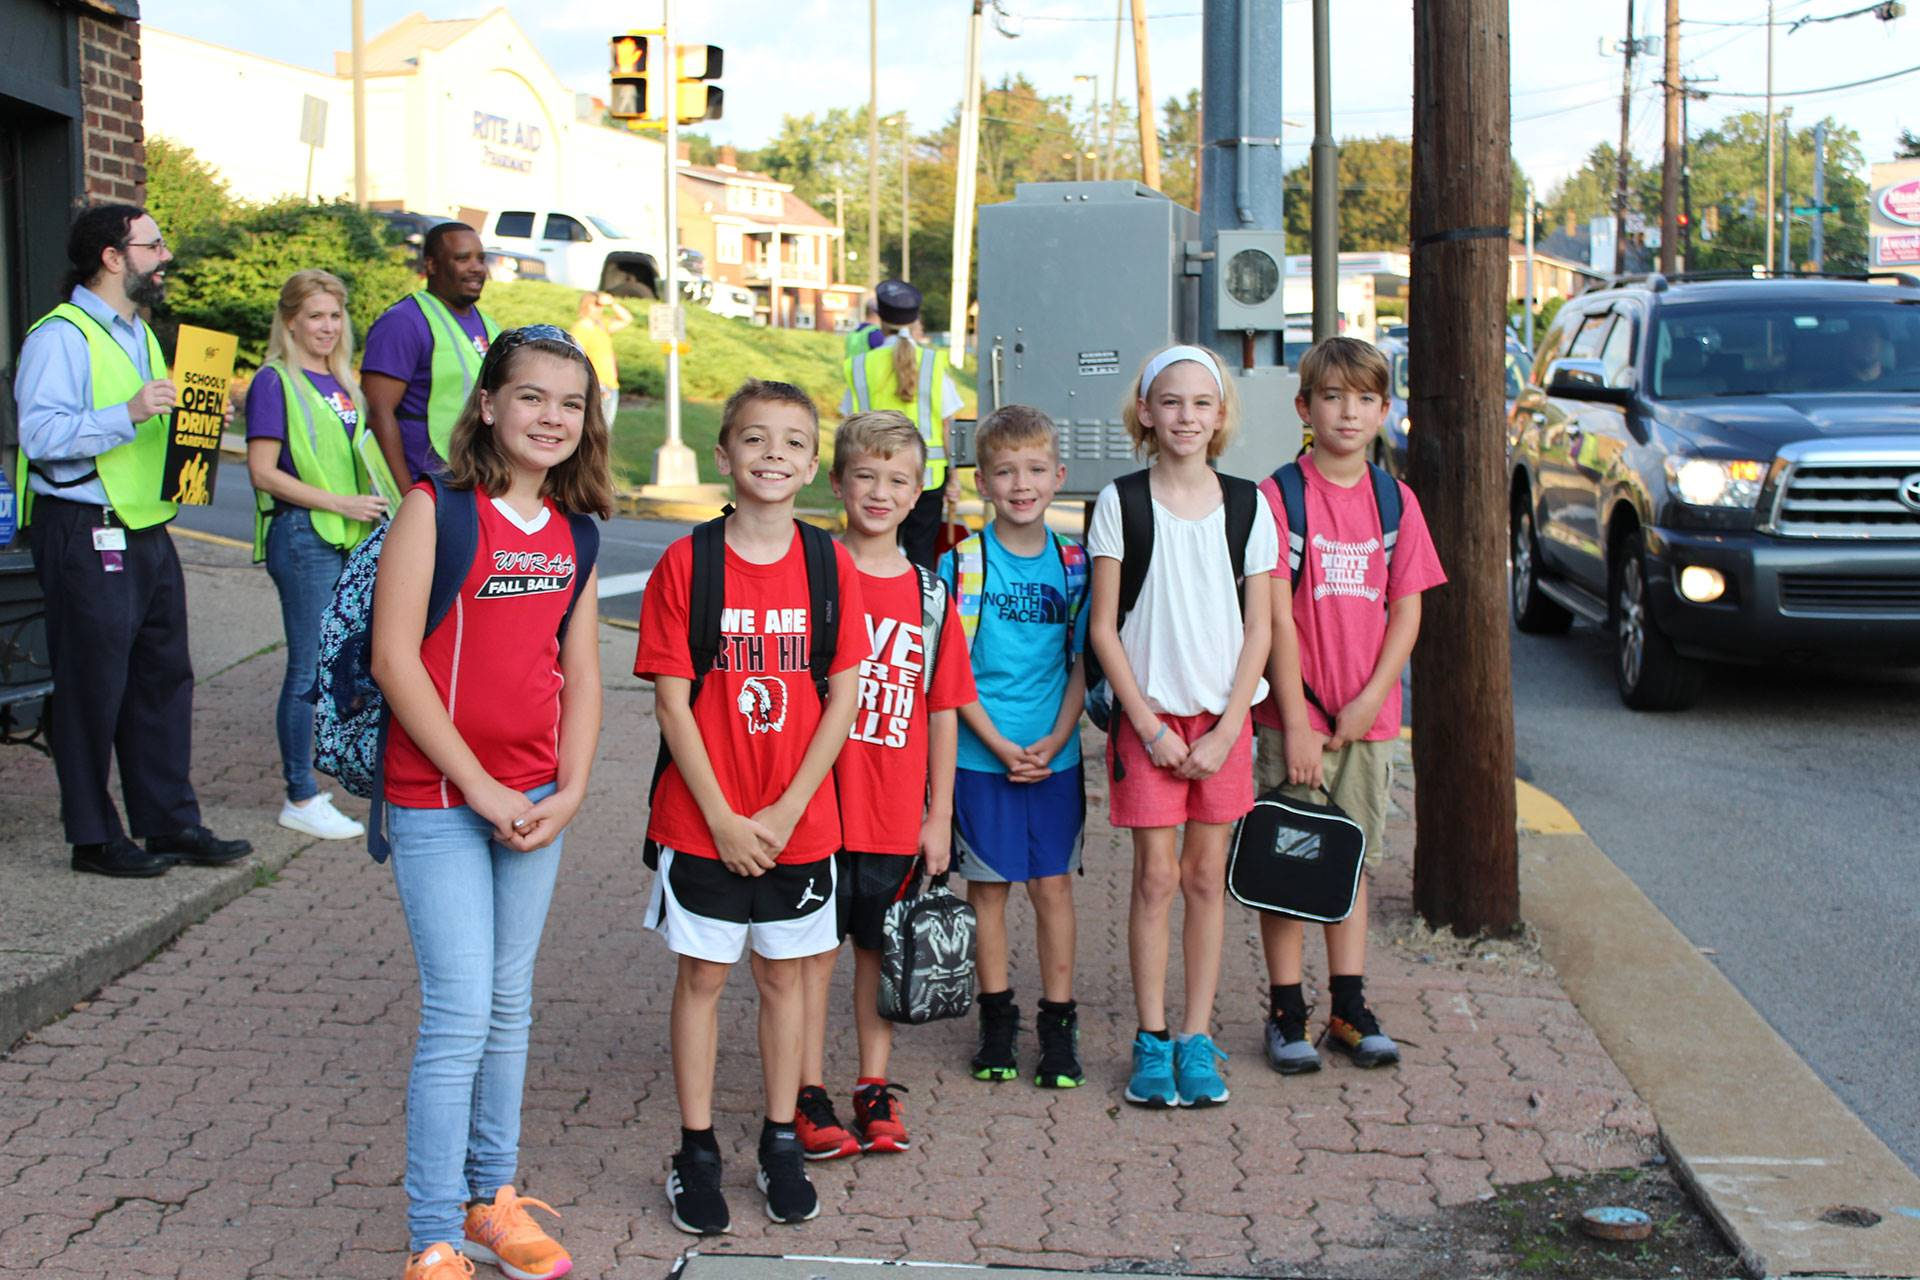 Students preparing to cross the street in front of West View Elementary School